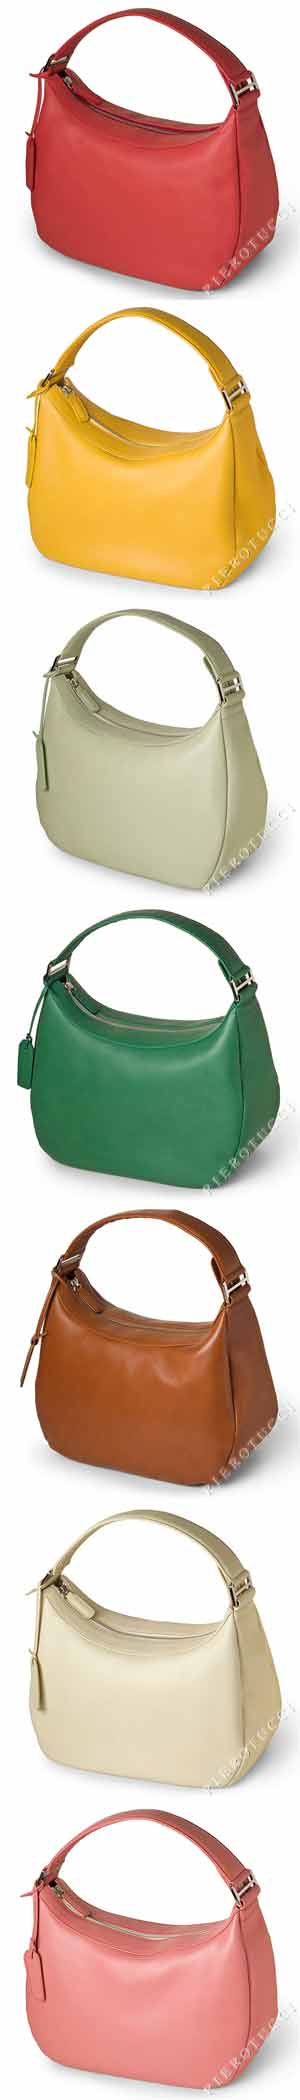 Genuine Leather Shoulder Bags from Pierotucci